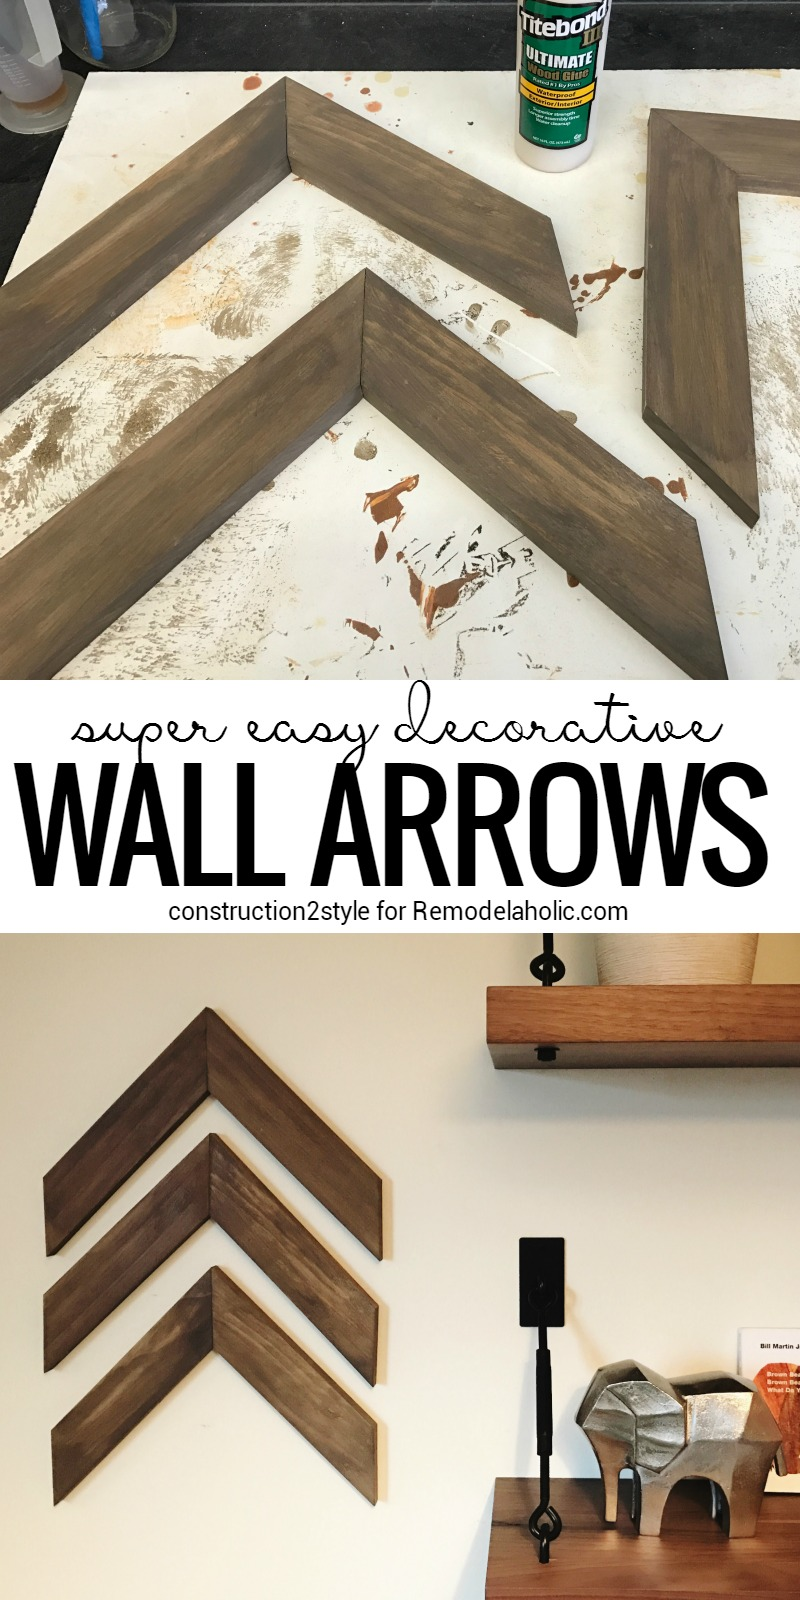 Great Super Easy DIY Wooden Arrow Wall Decorations Full DIY tutorial from constructionstyle on Remodealaholic